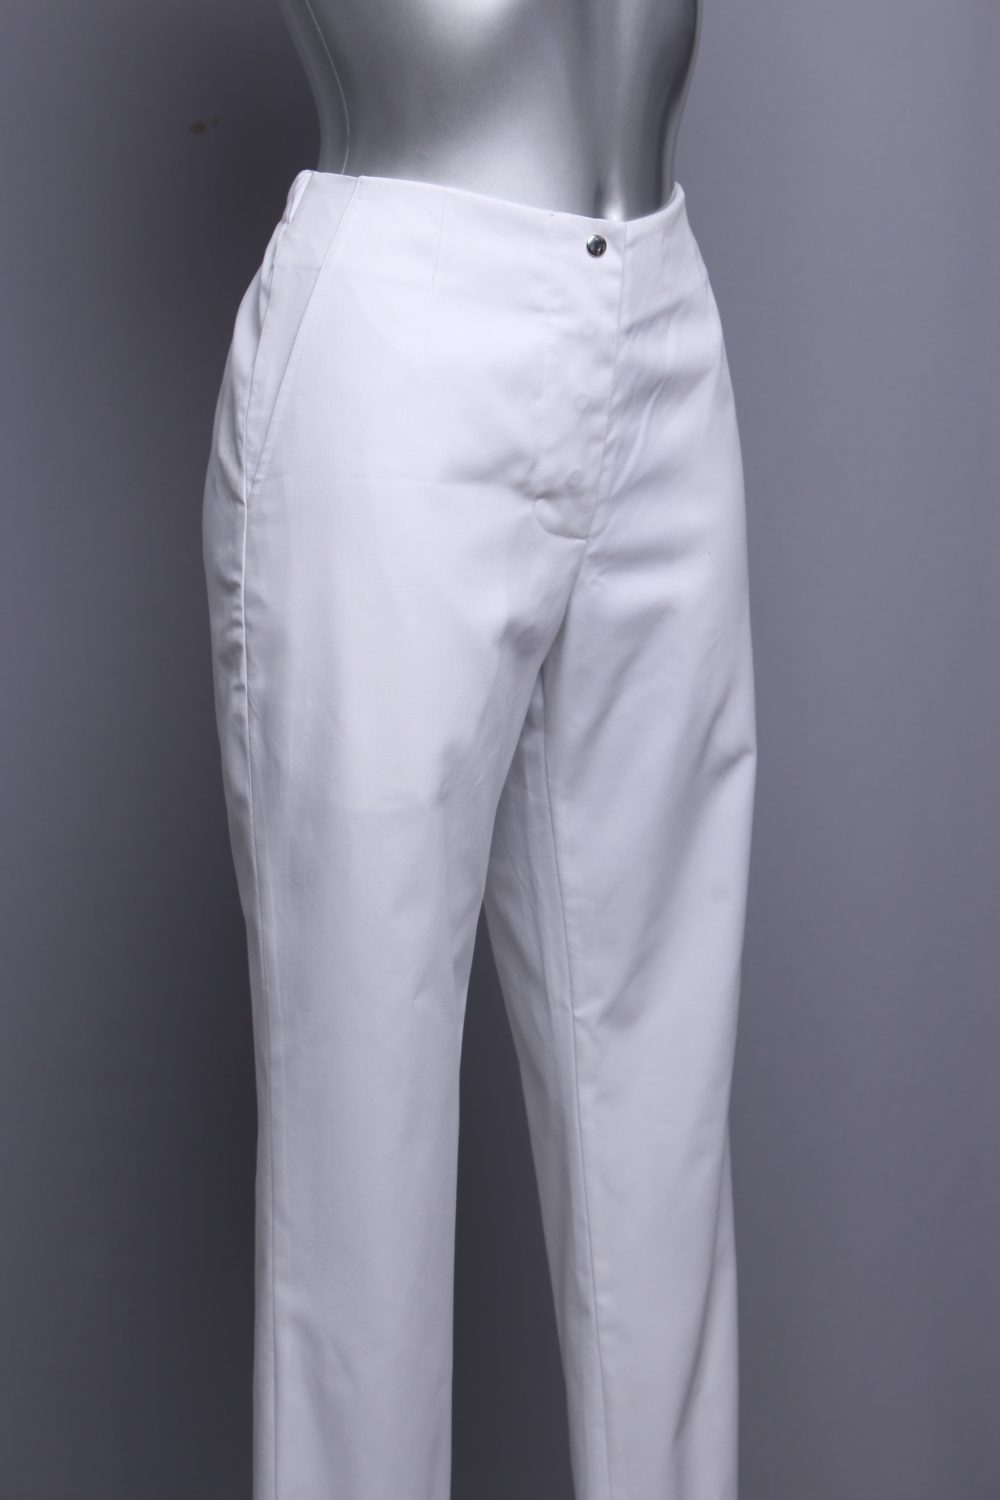 women's pants for doctors, spa, hairdressers